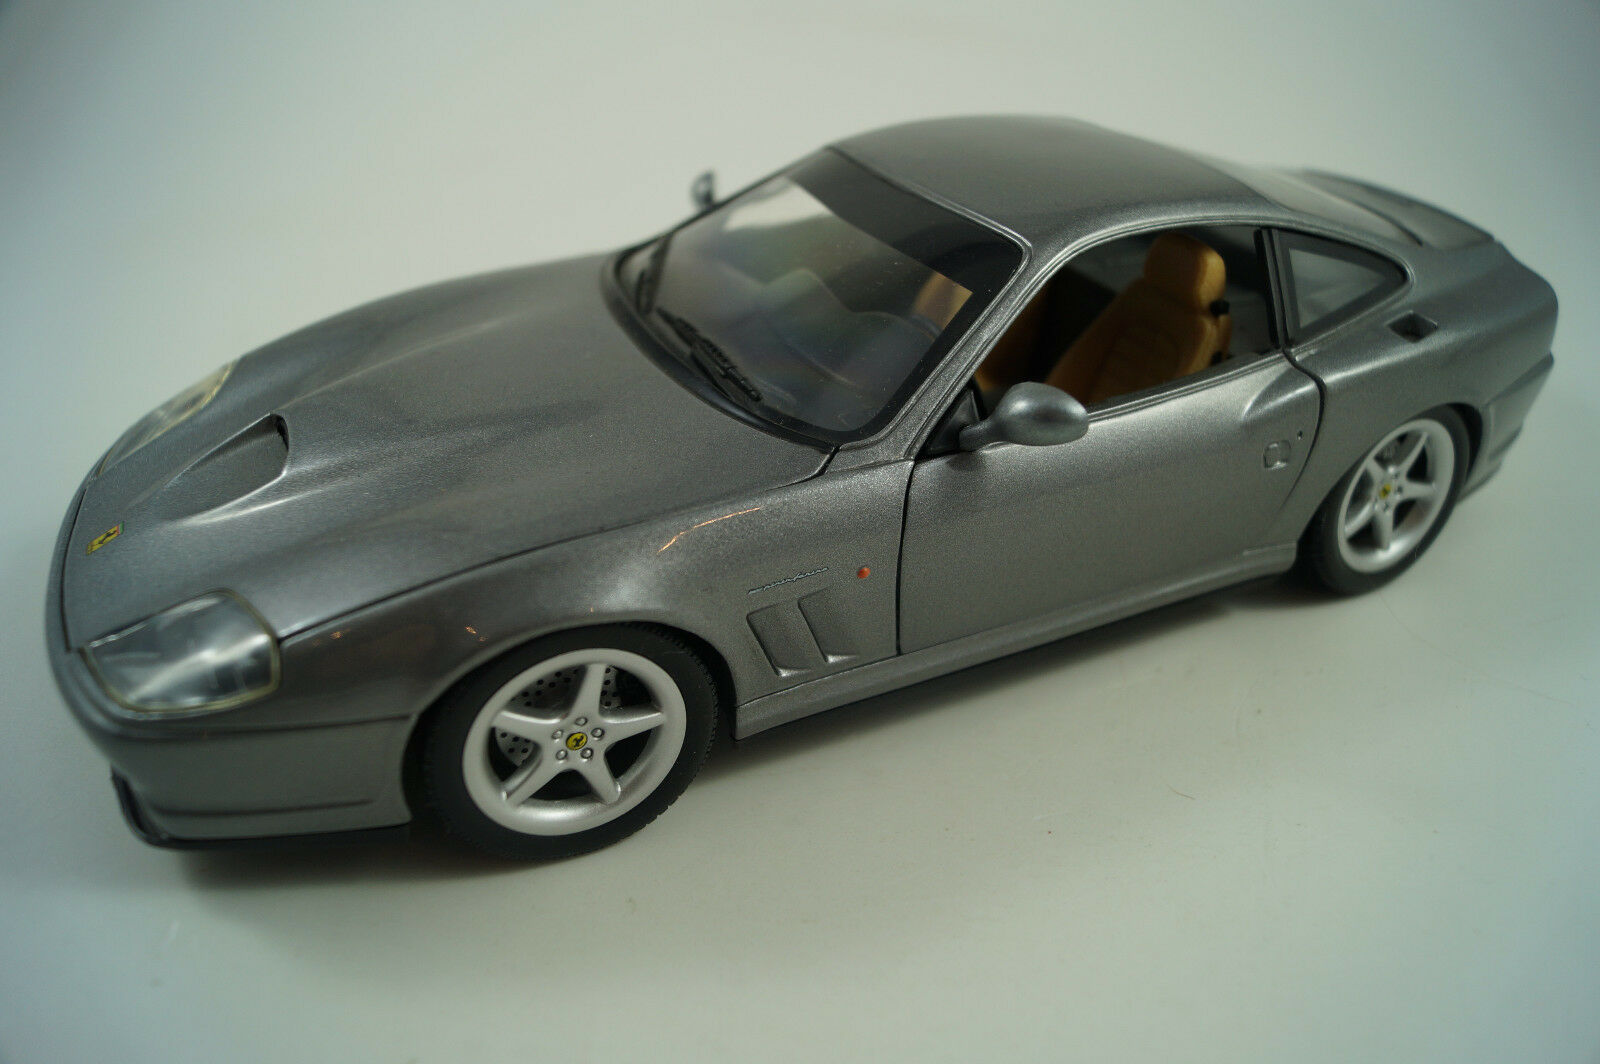 HOT WHEELS voiture miniature 1 18 Ferrari 550 Maranello